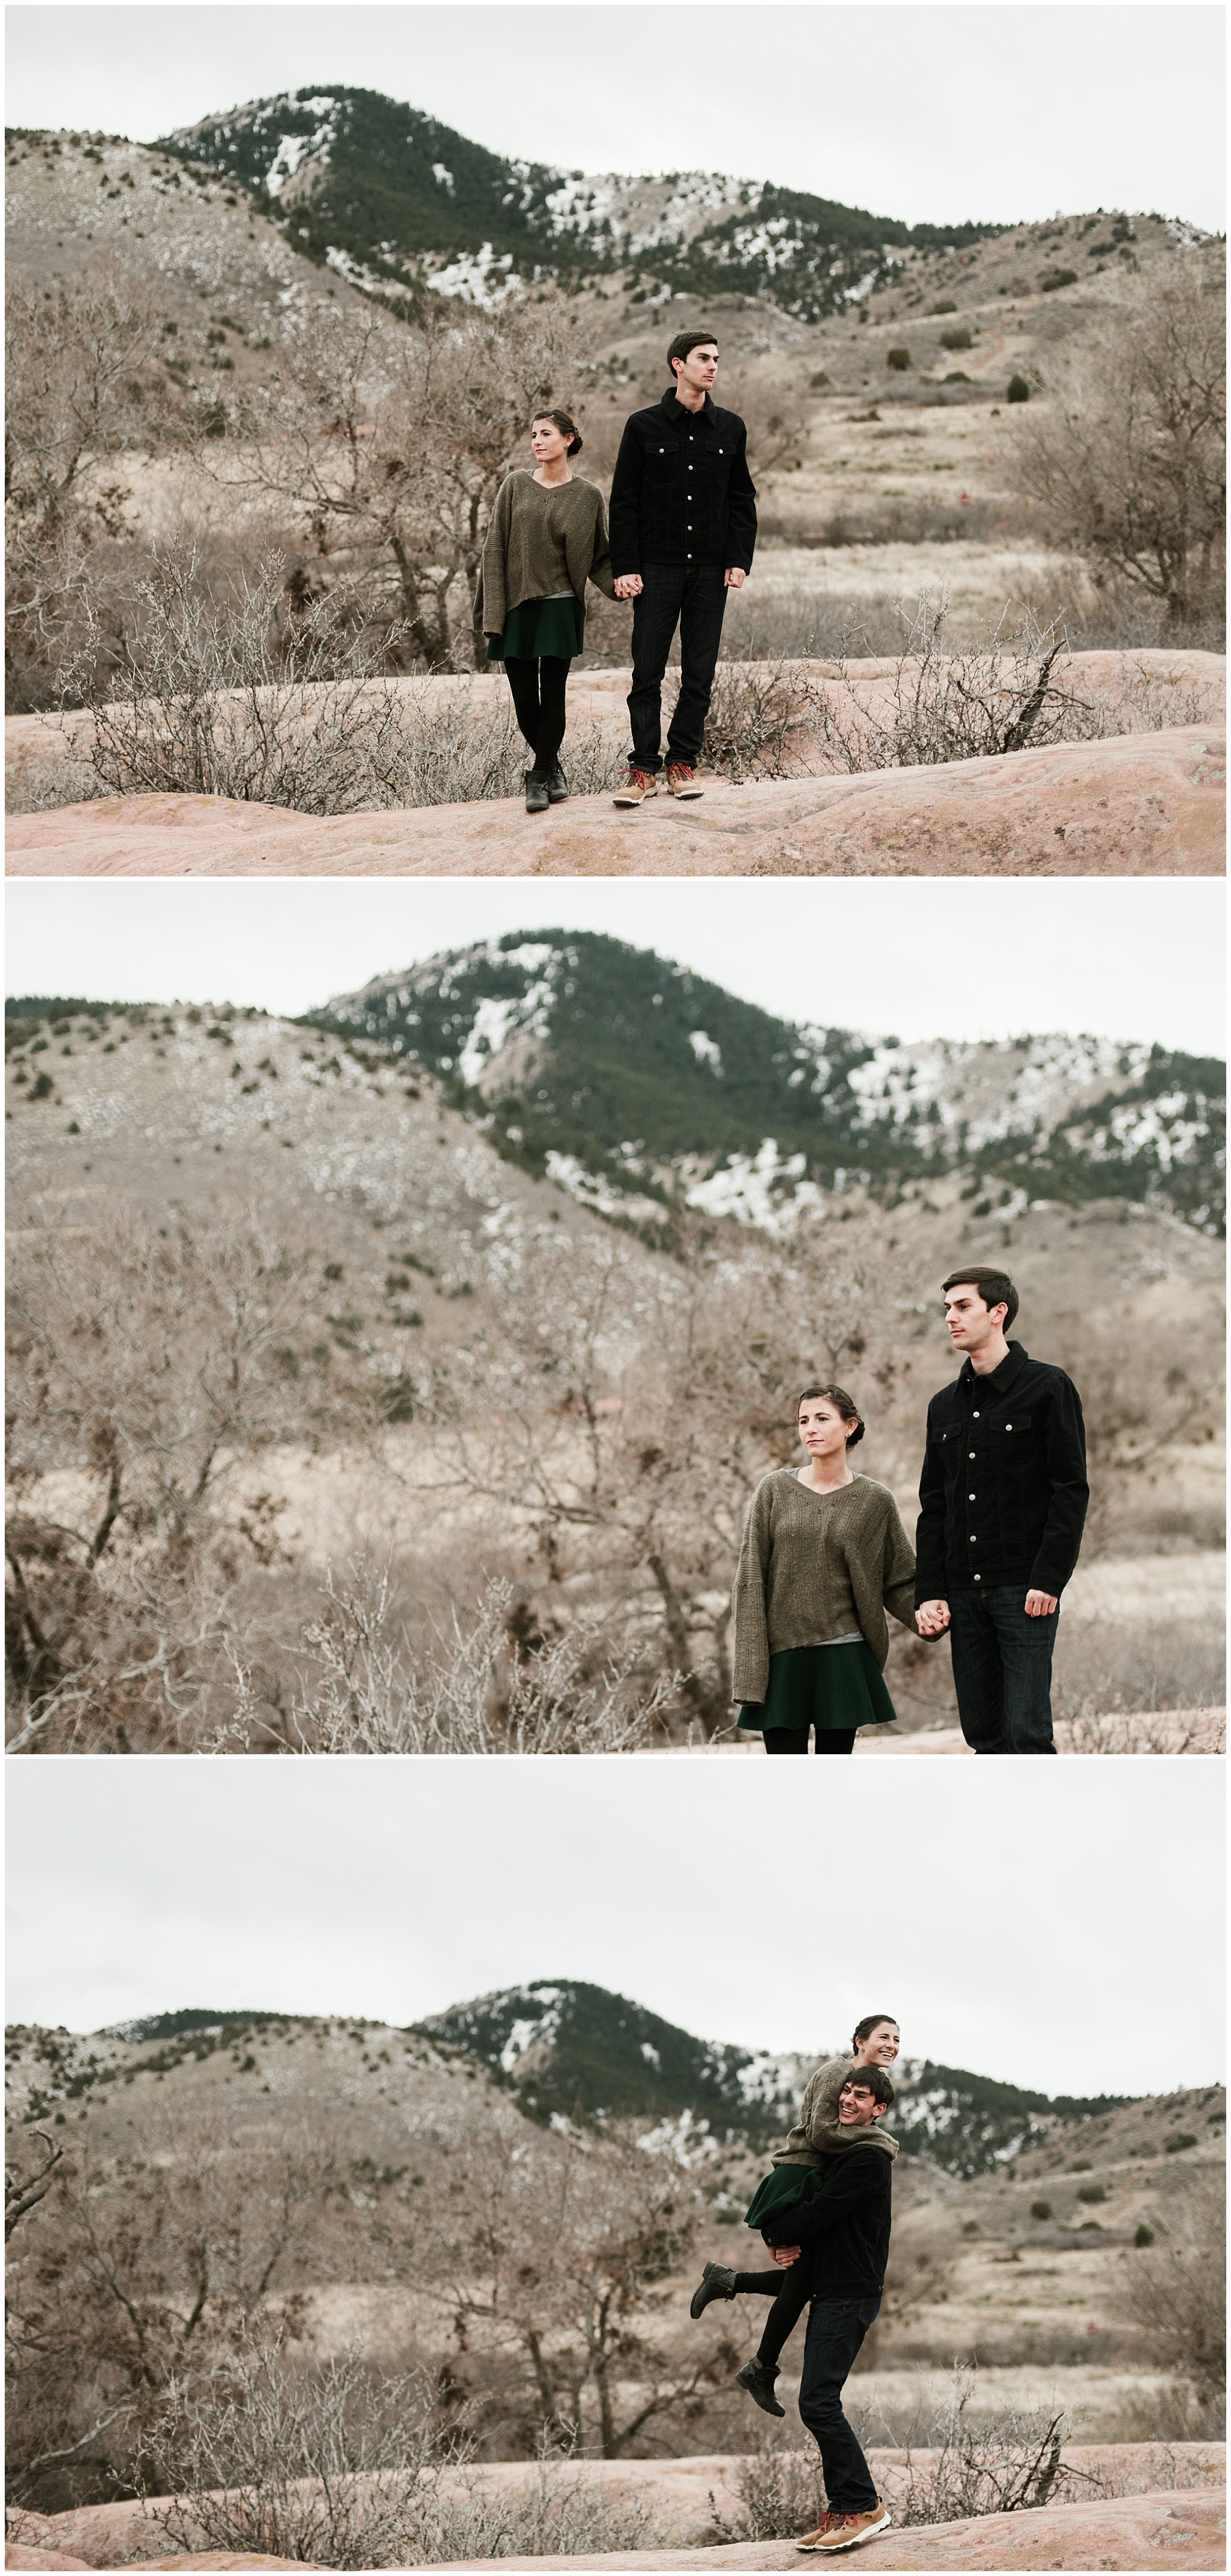 Katesalleyphotography-26_engagement shoot at Red Rocks.jpg